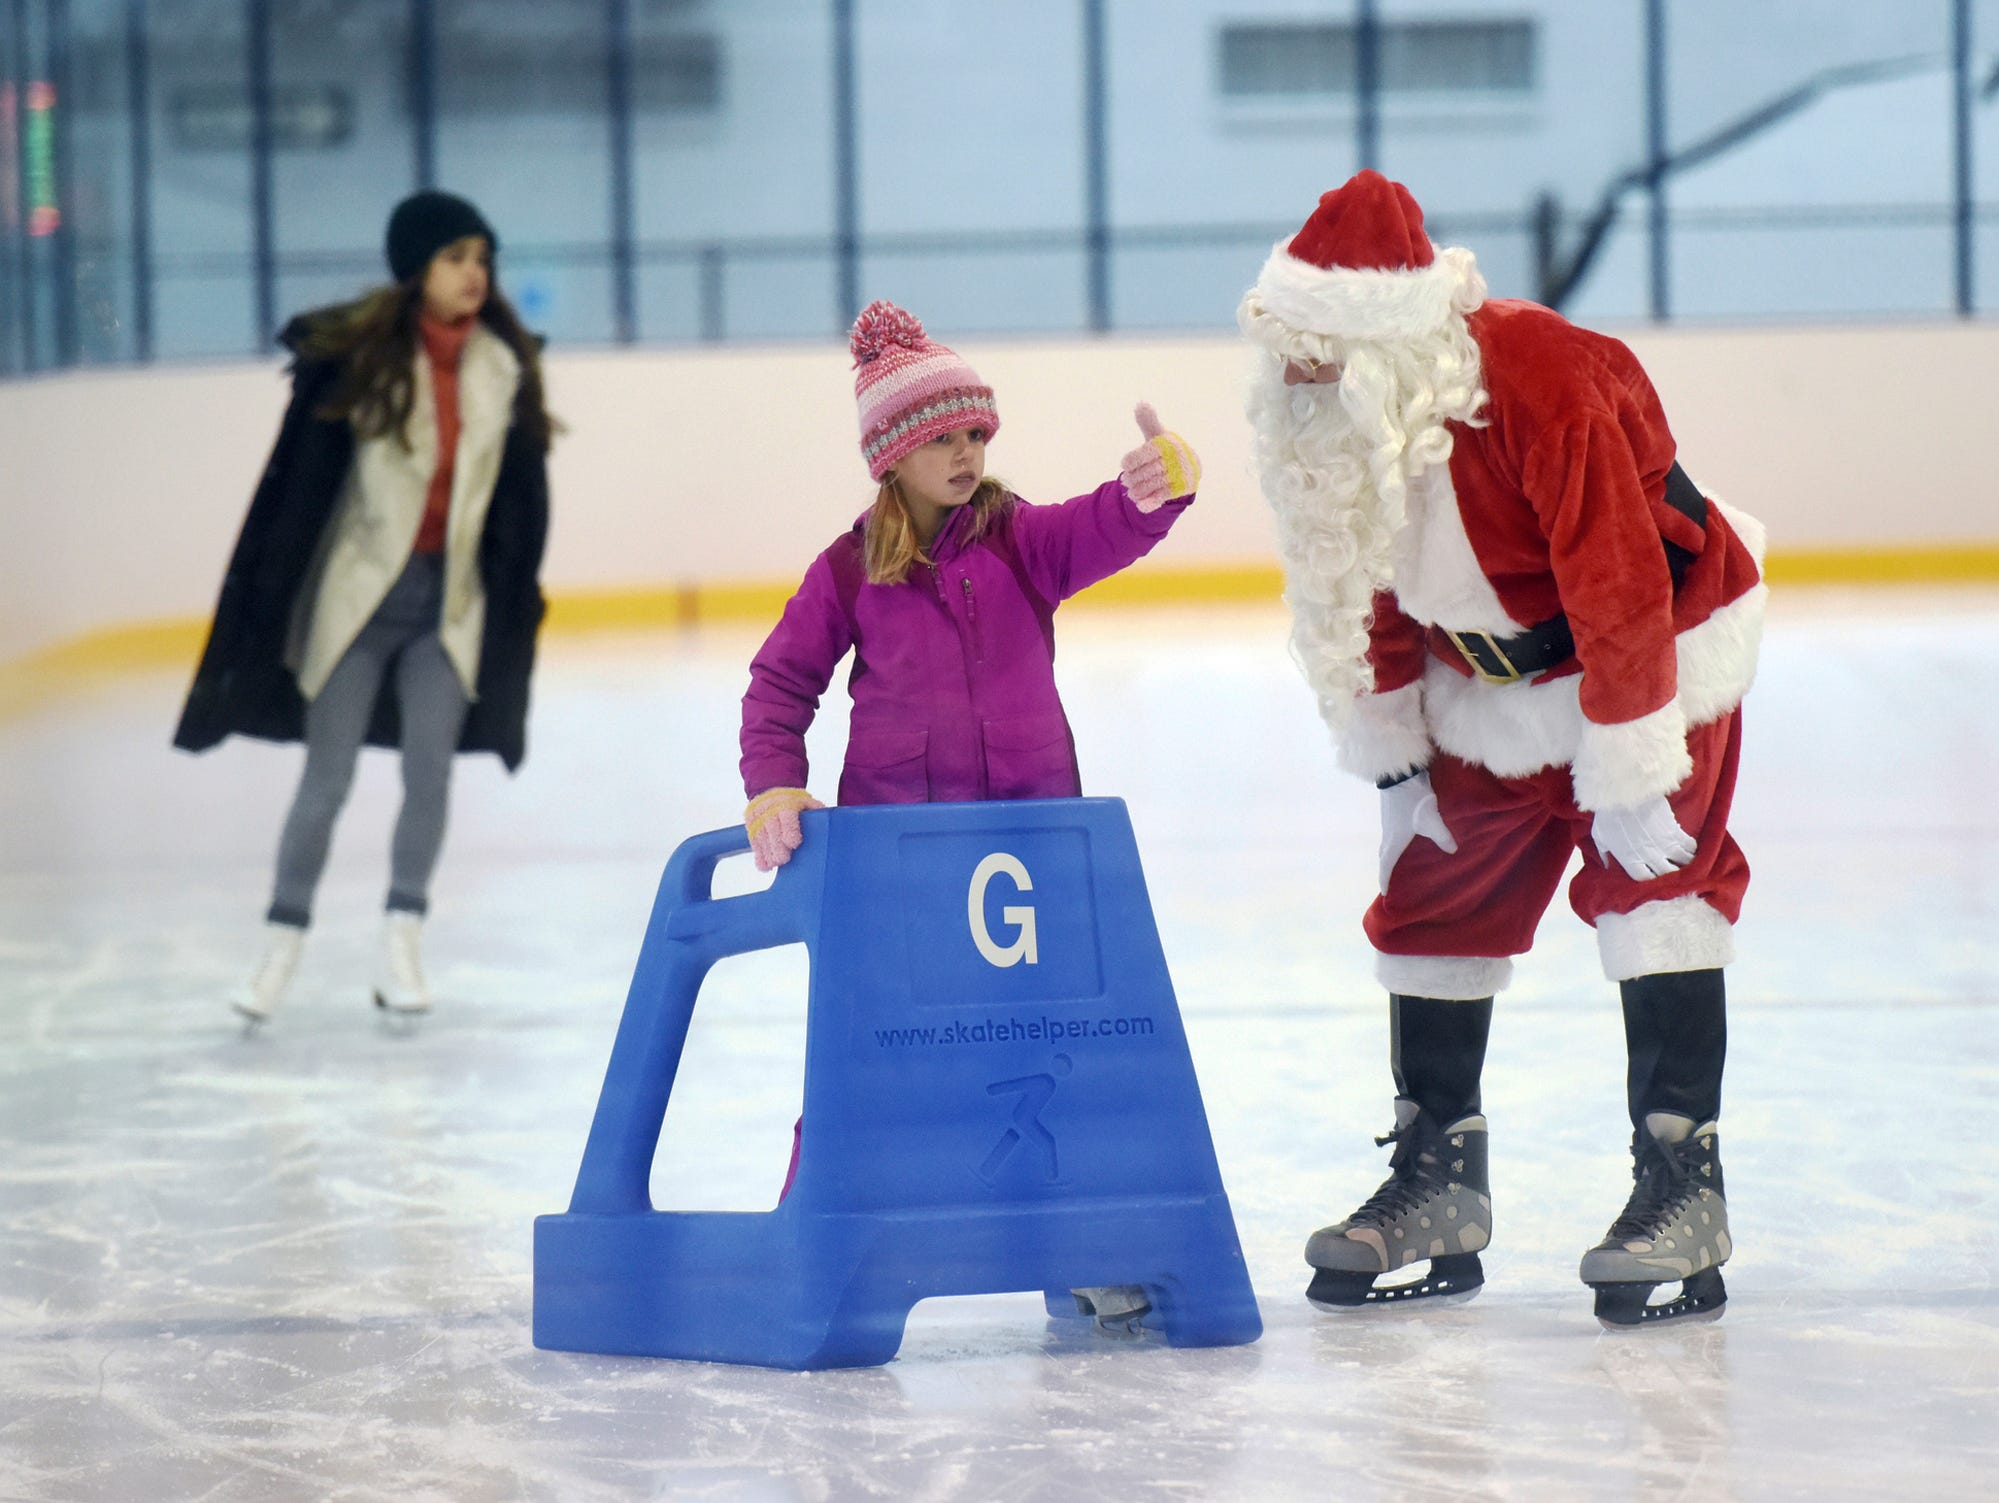 Santa Claus, played by Carmeron Robertson, talks with Ella Westerbeek, 6, while ice skating Saturday, Dec. 22, 2018, at the John & Dede Howard Ice Arena in St. Joseph, Mich.